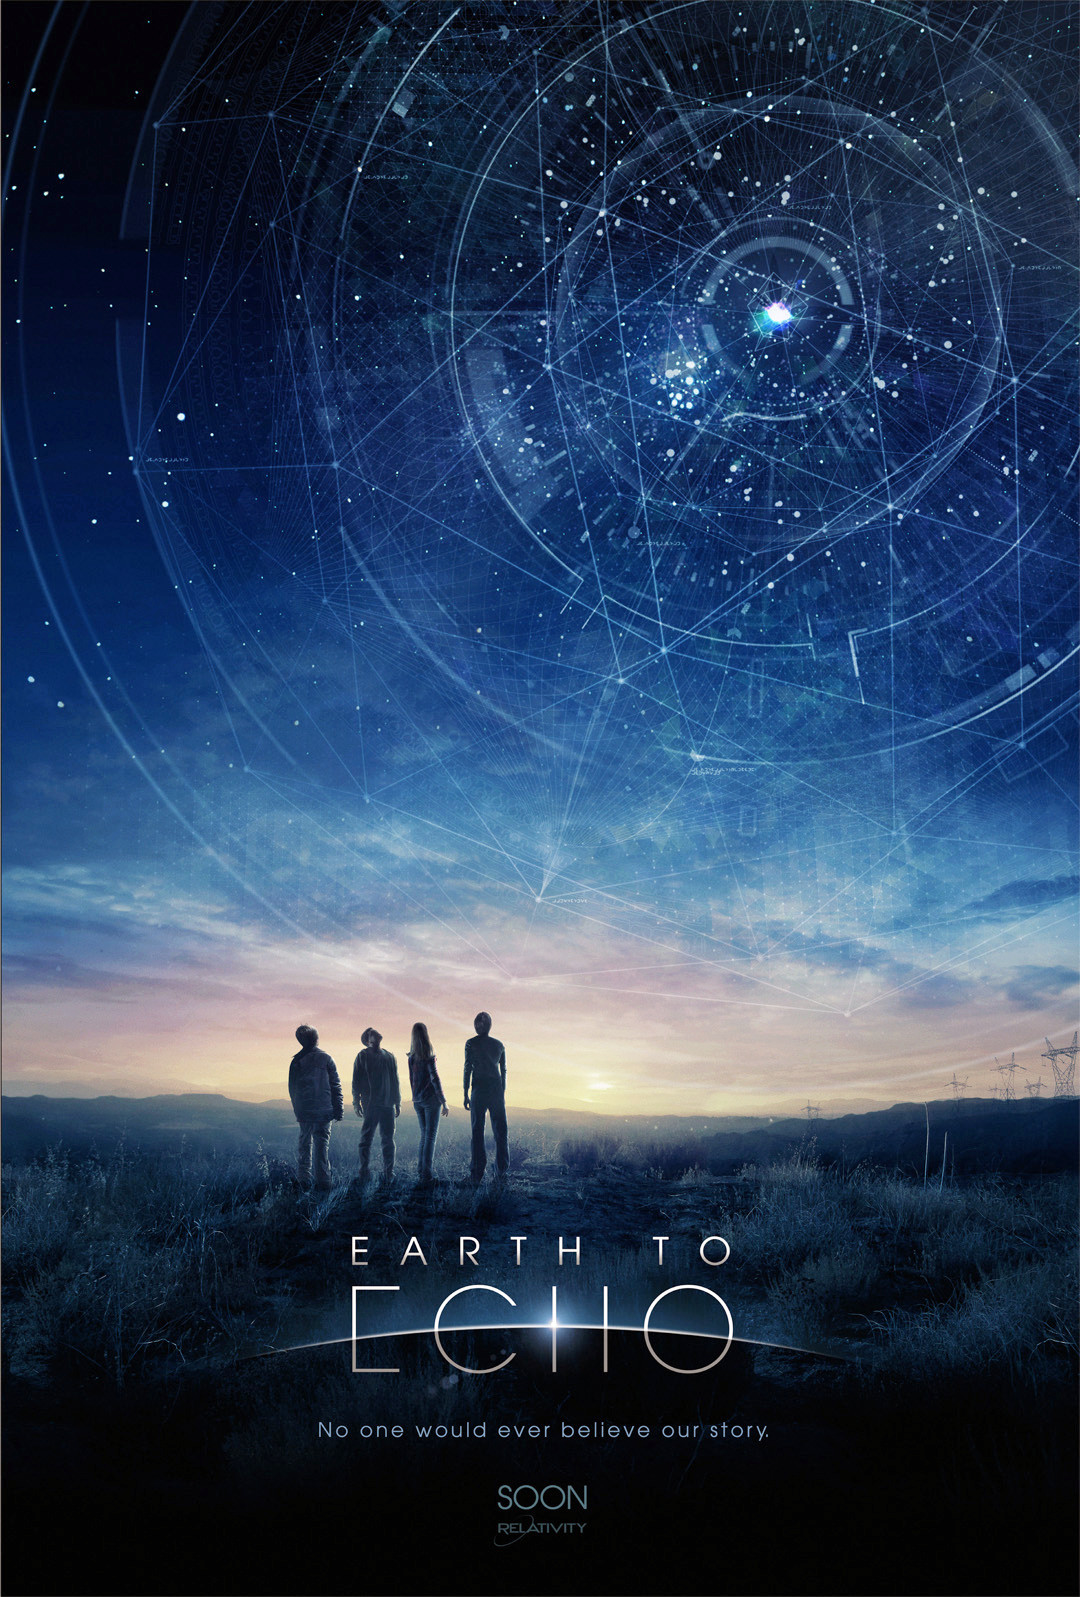 Earth to Echo Movie Film 2014 - Sinopsis